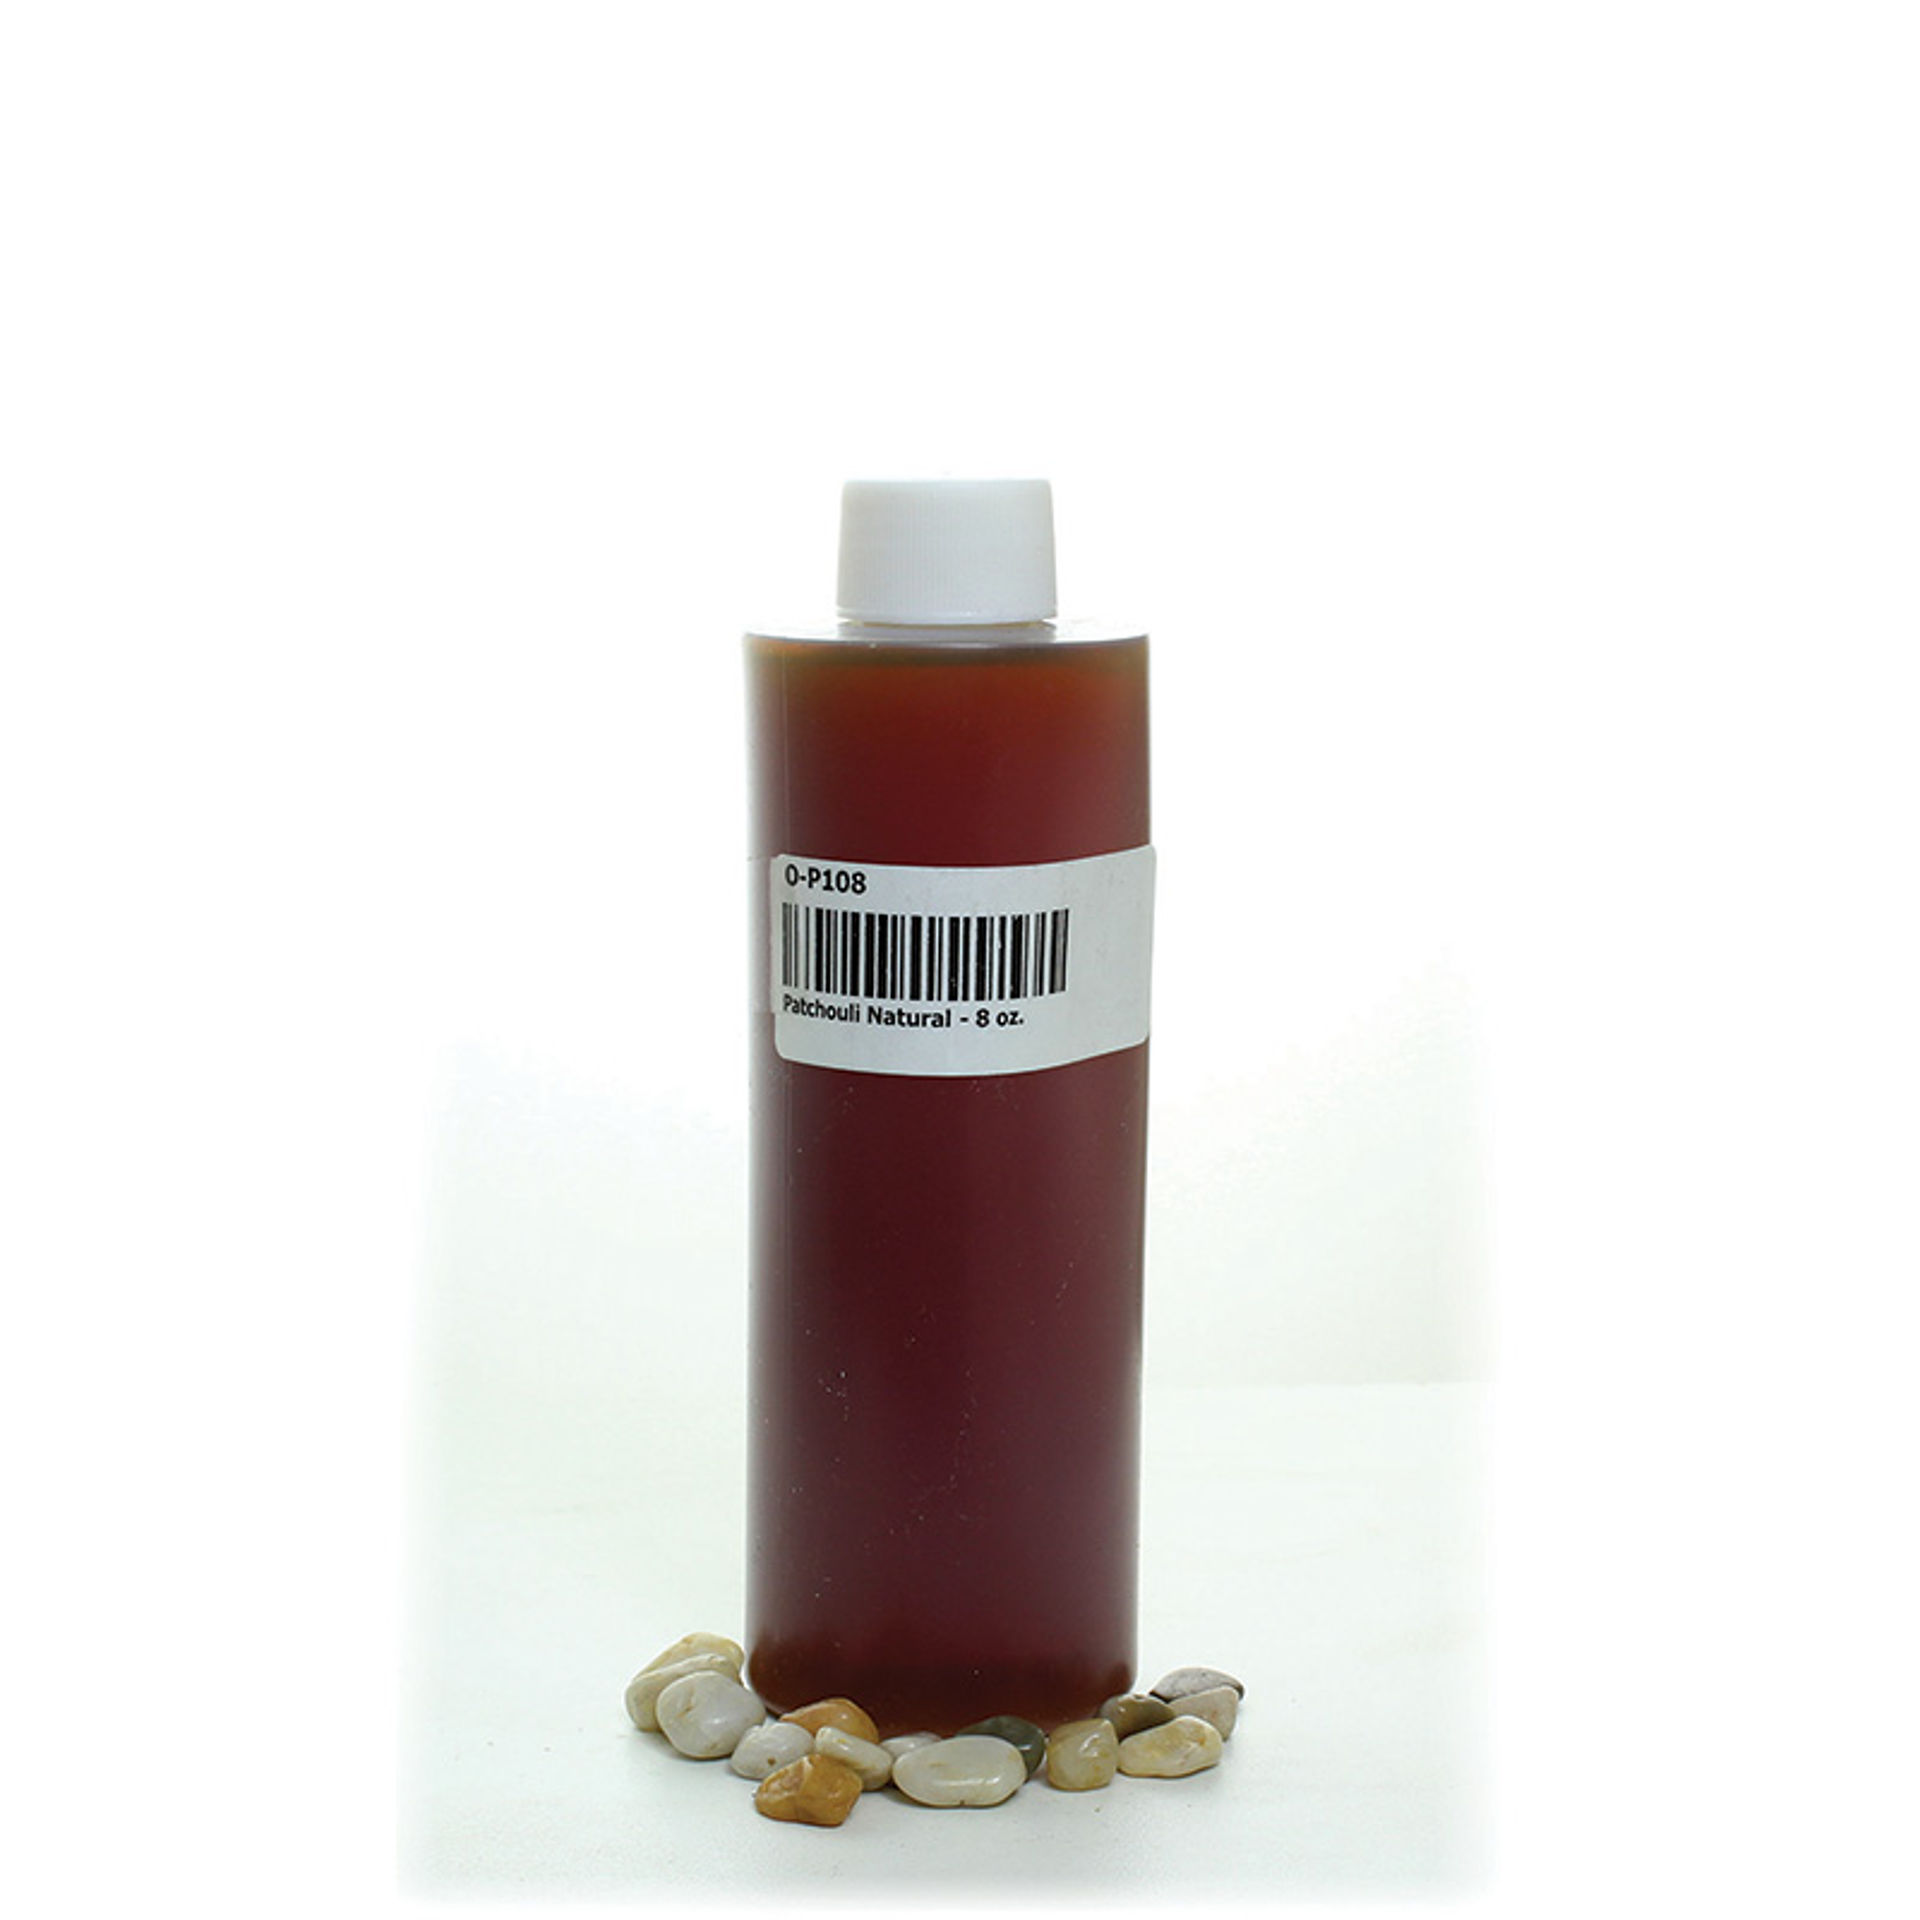 Picture of Patchouli Natural - 8 oz.